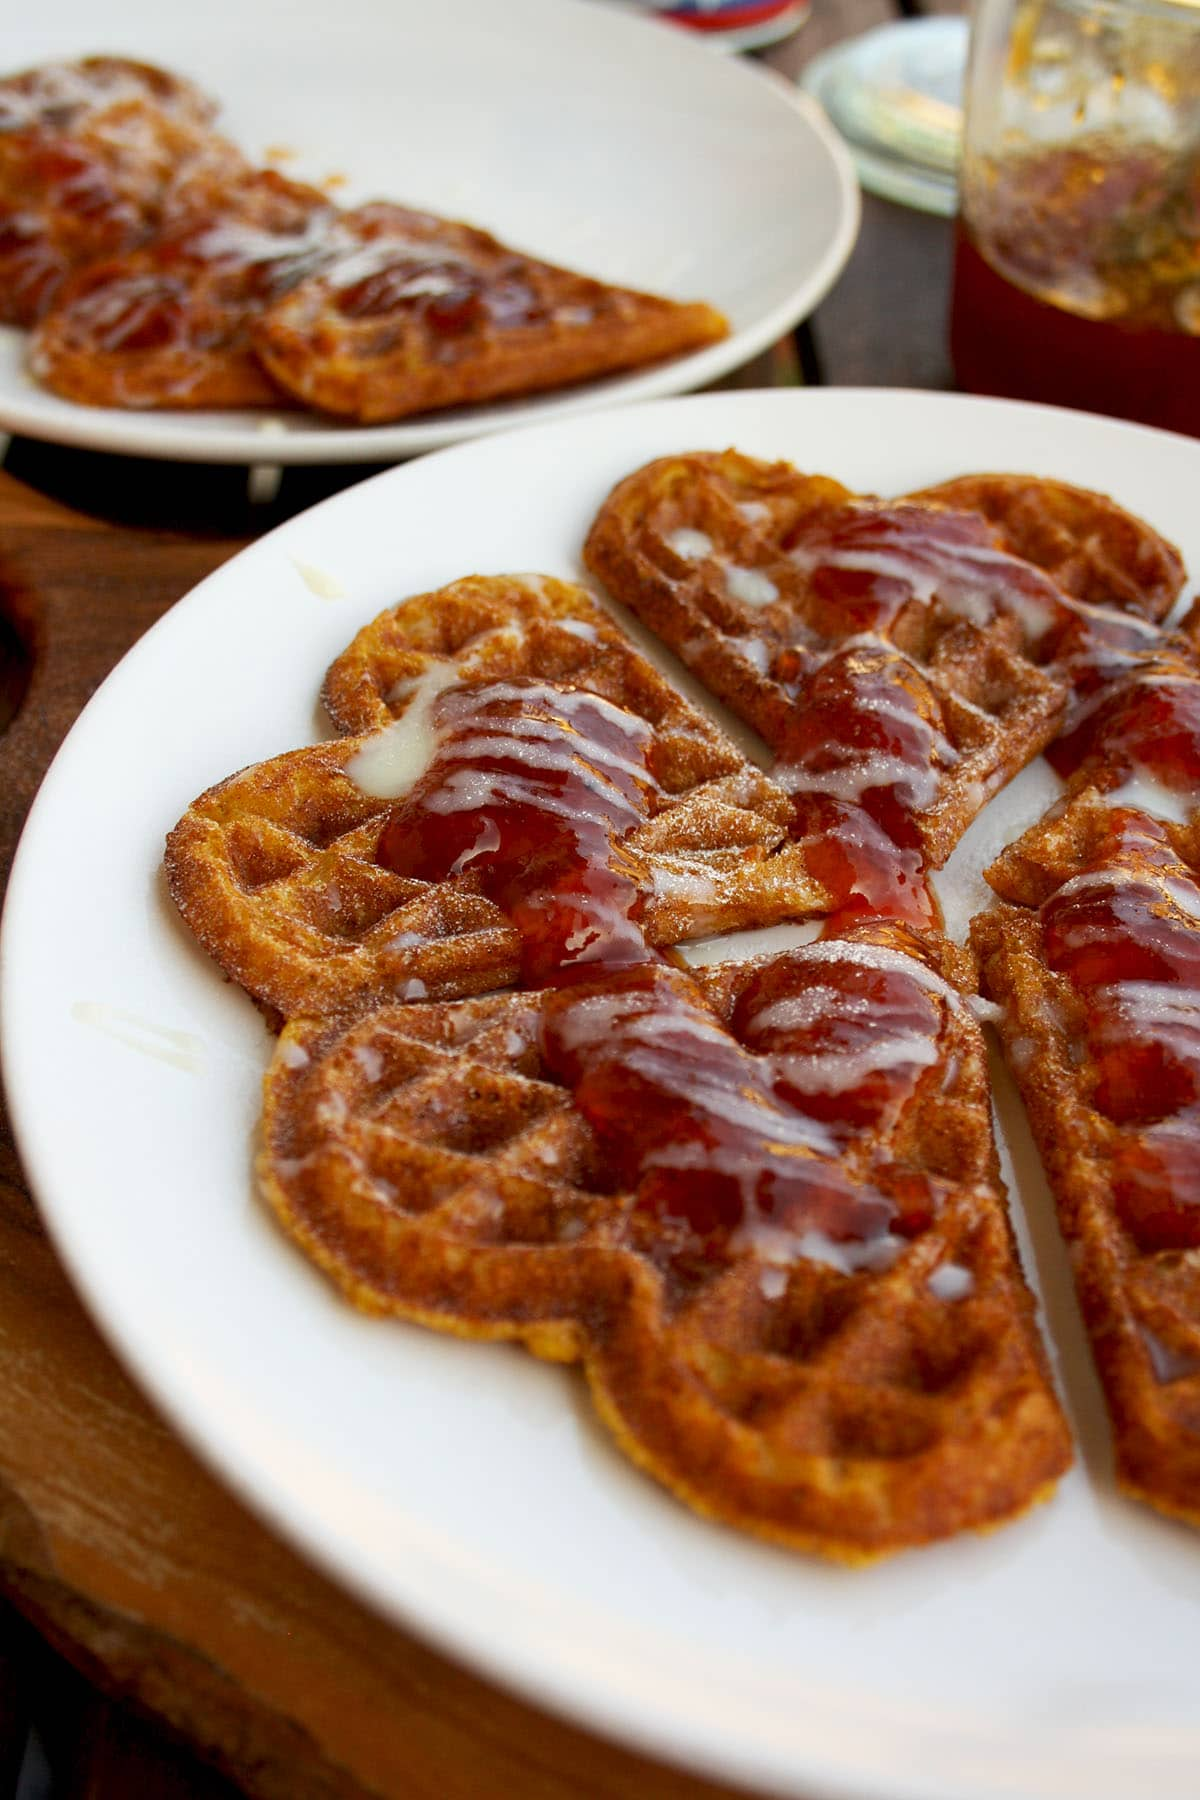 Delicious and low-caloric pumpkin waffles: Great for a Sunday brunch! Condensed milk and prickly pear cactus jam can be stored in the fridge for over a month